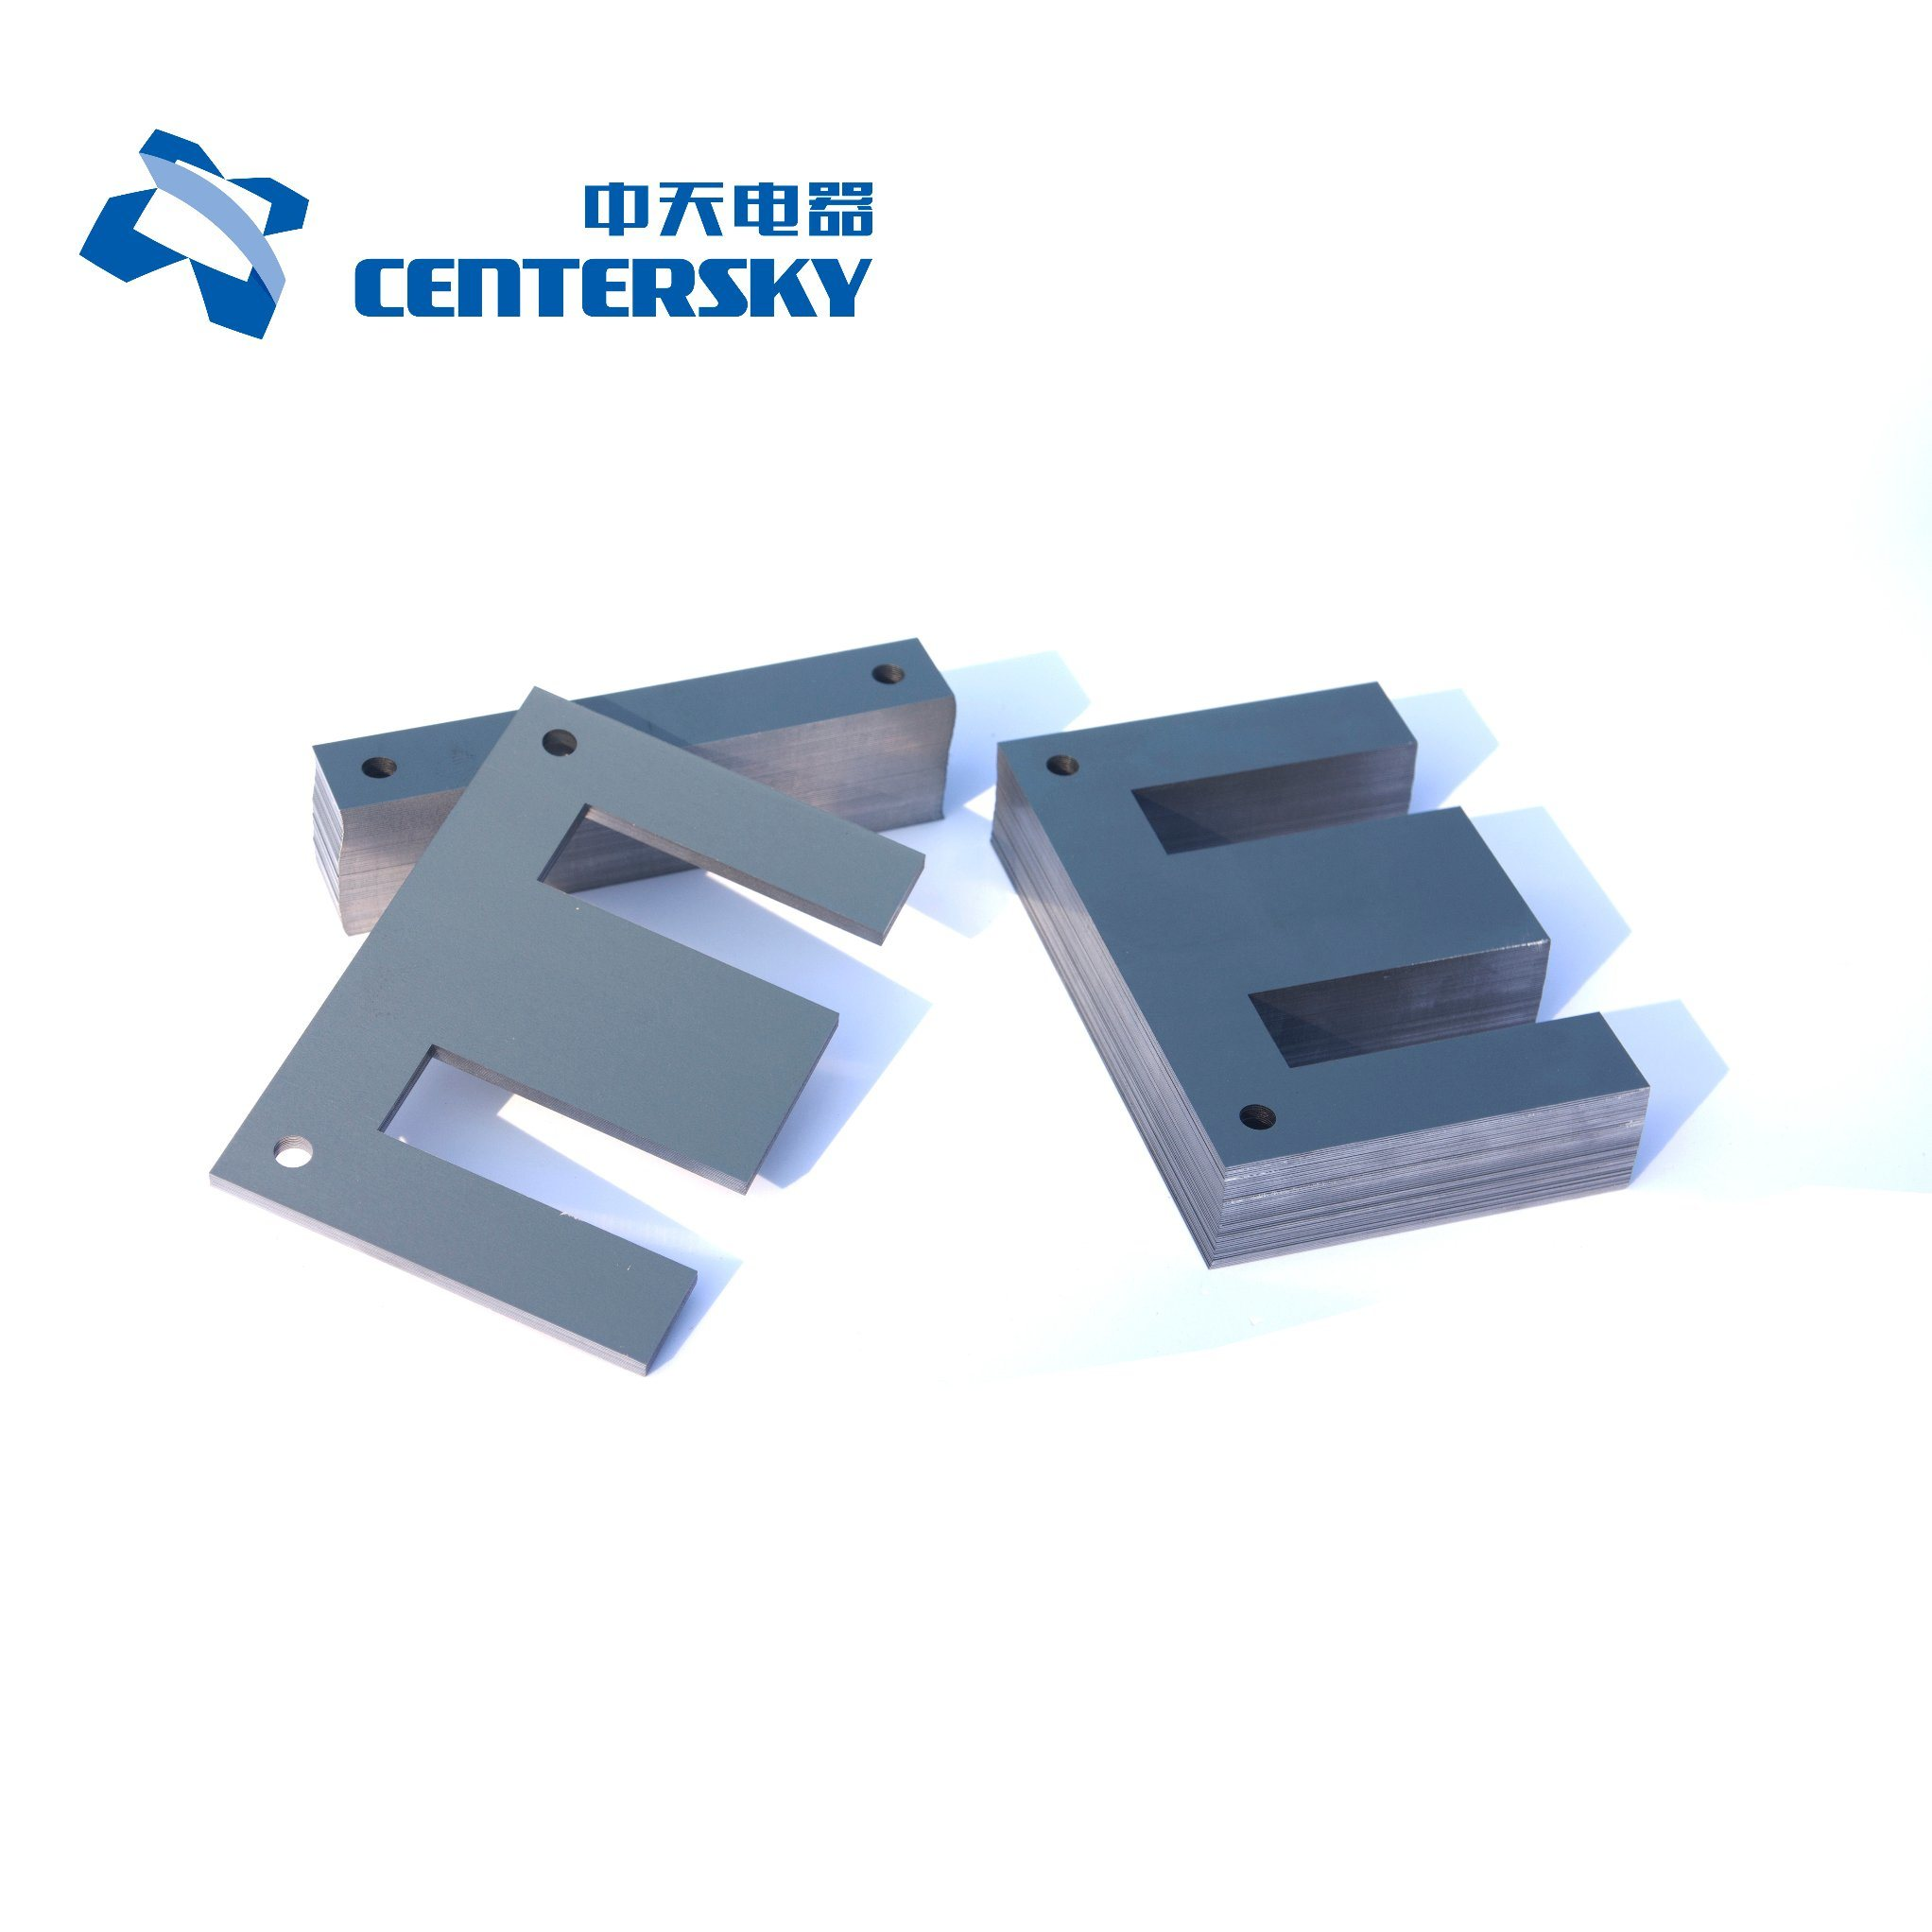 Centersky Single Phase Ei Silicon Steel Sheet for Transformer